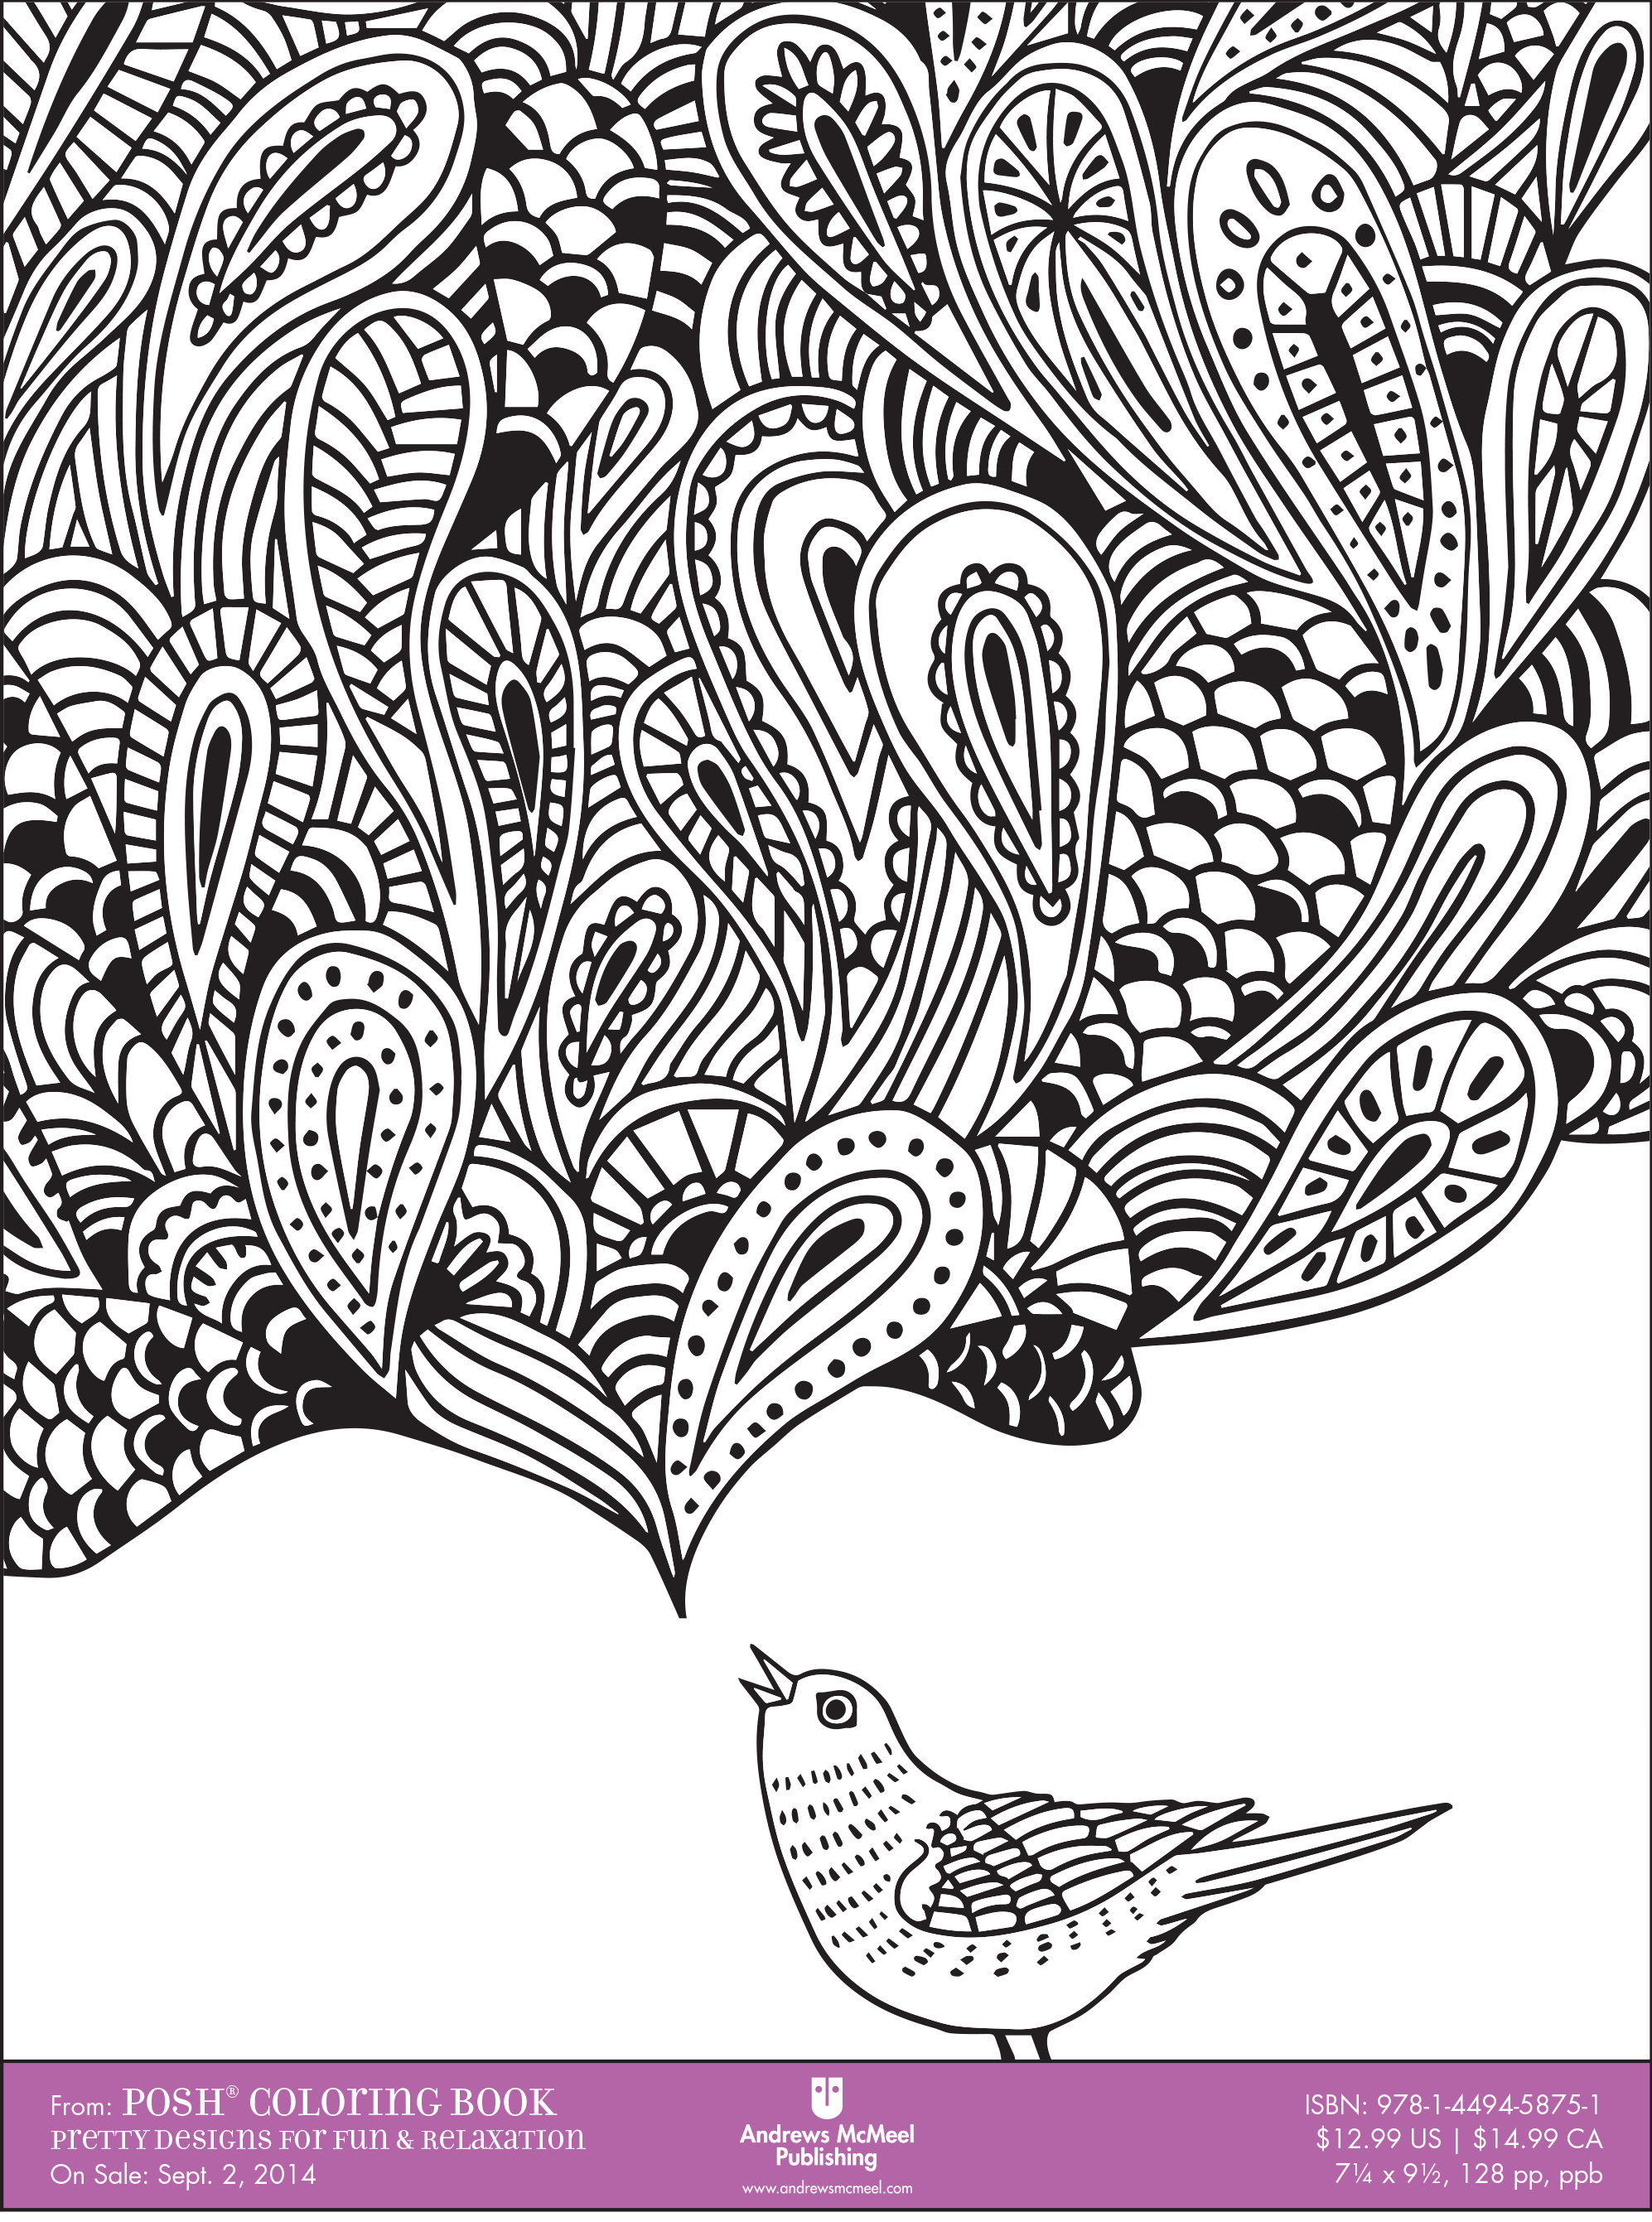 coloring books for adults downloadable sample pages are available here